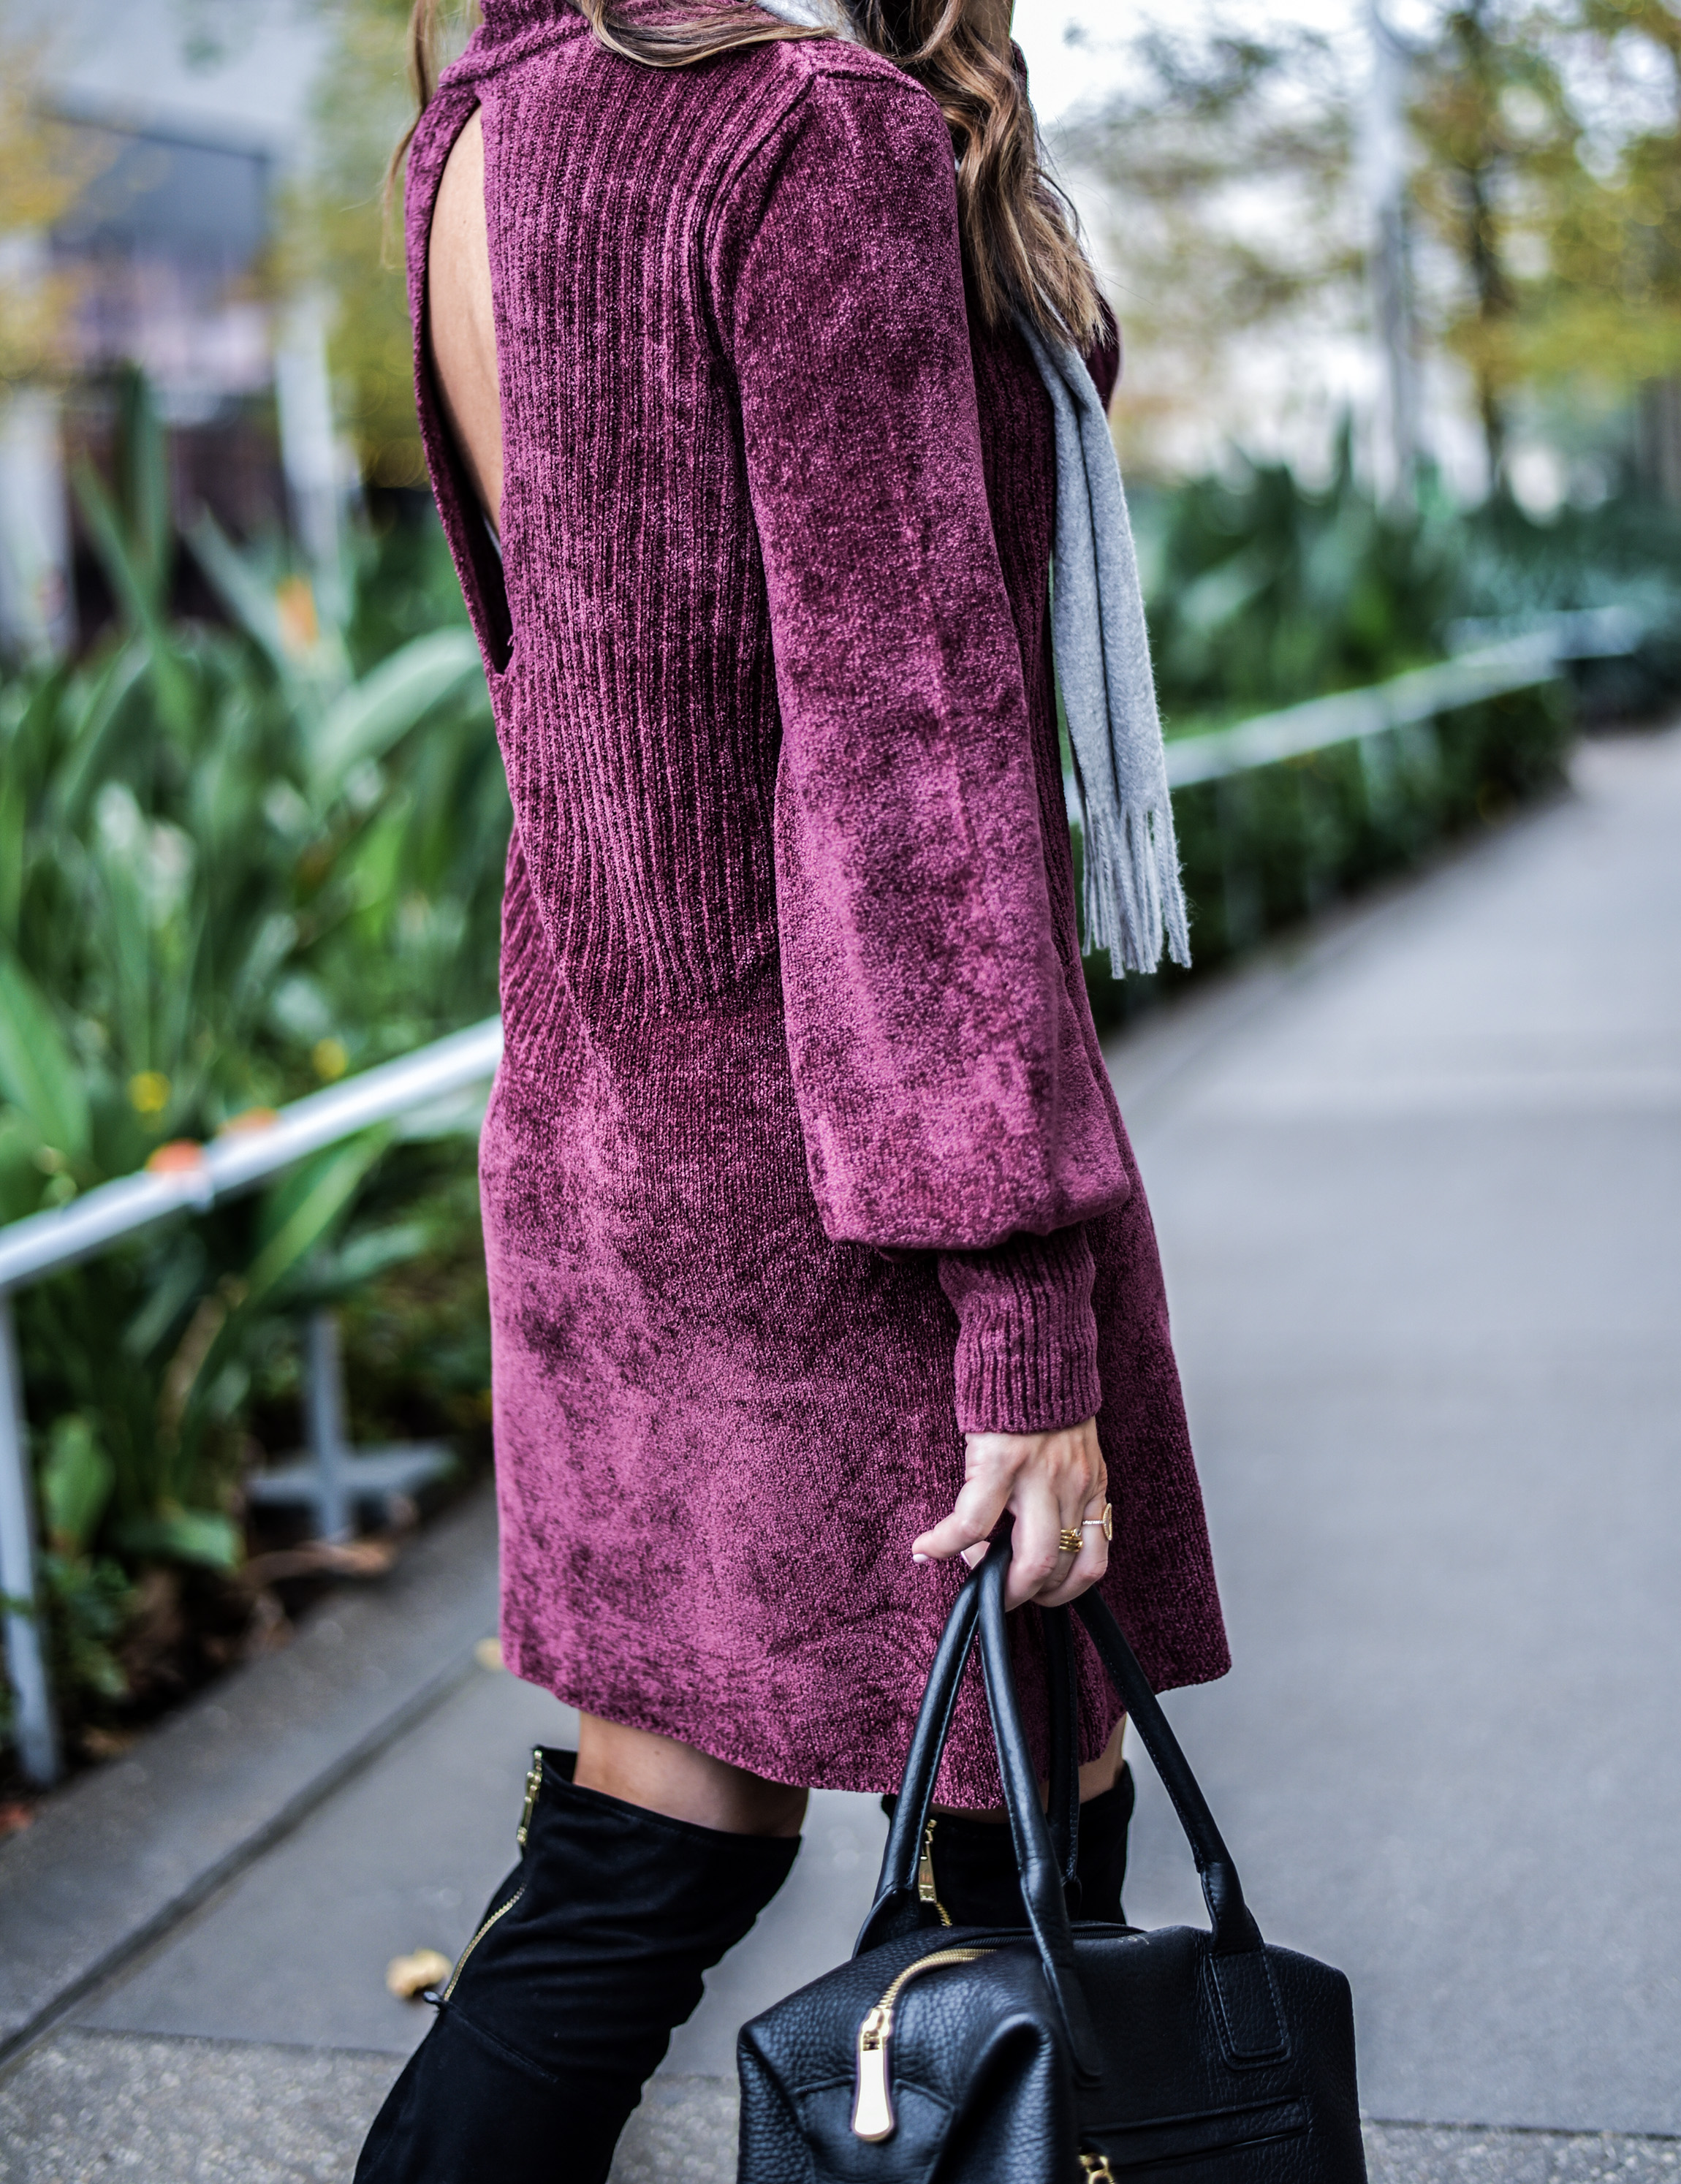 Houston fashion and style blogger Tiffany Jais wearing a Free People sweater dress and black over the knee boots | women's fashion